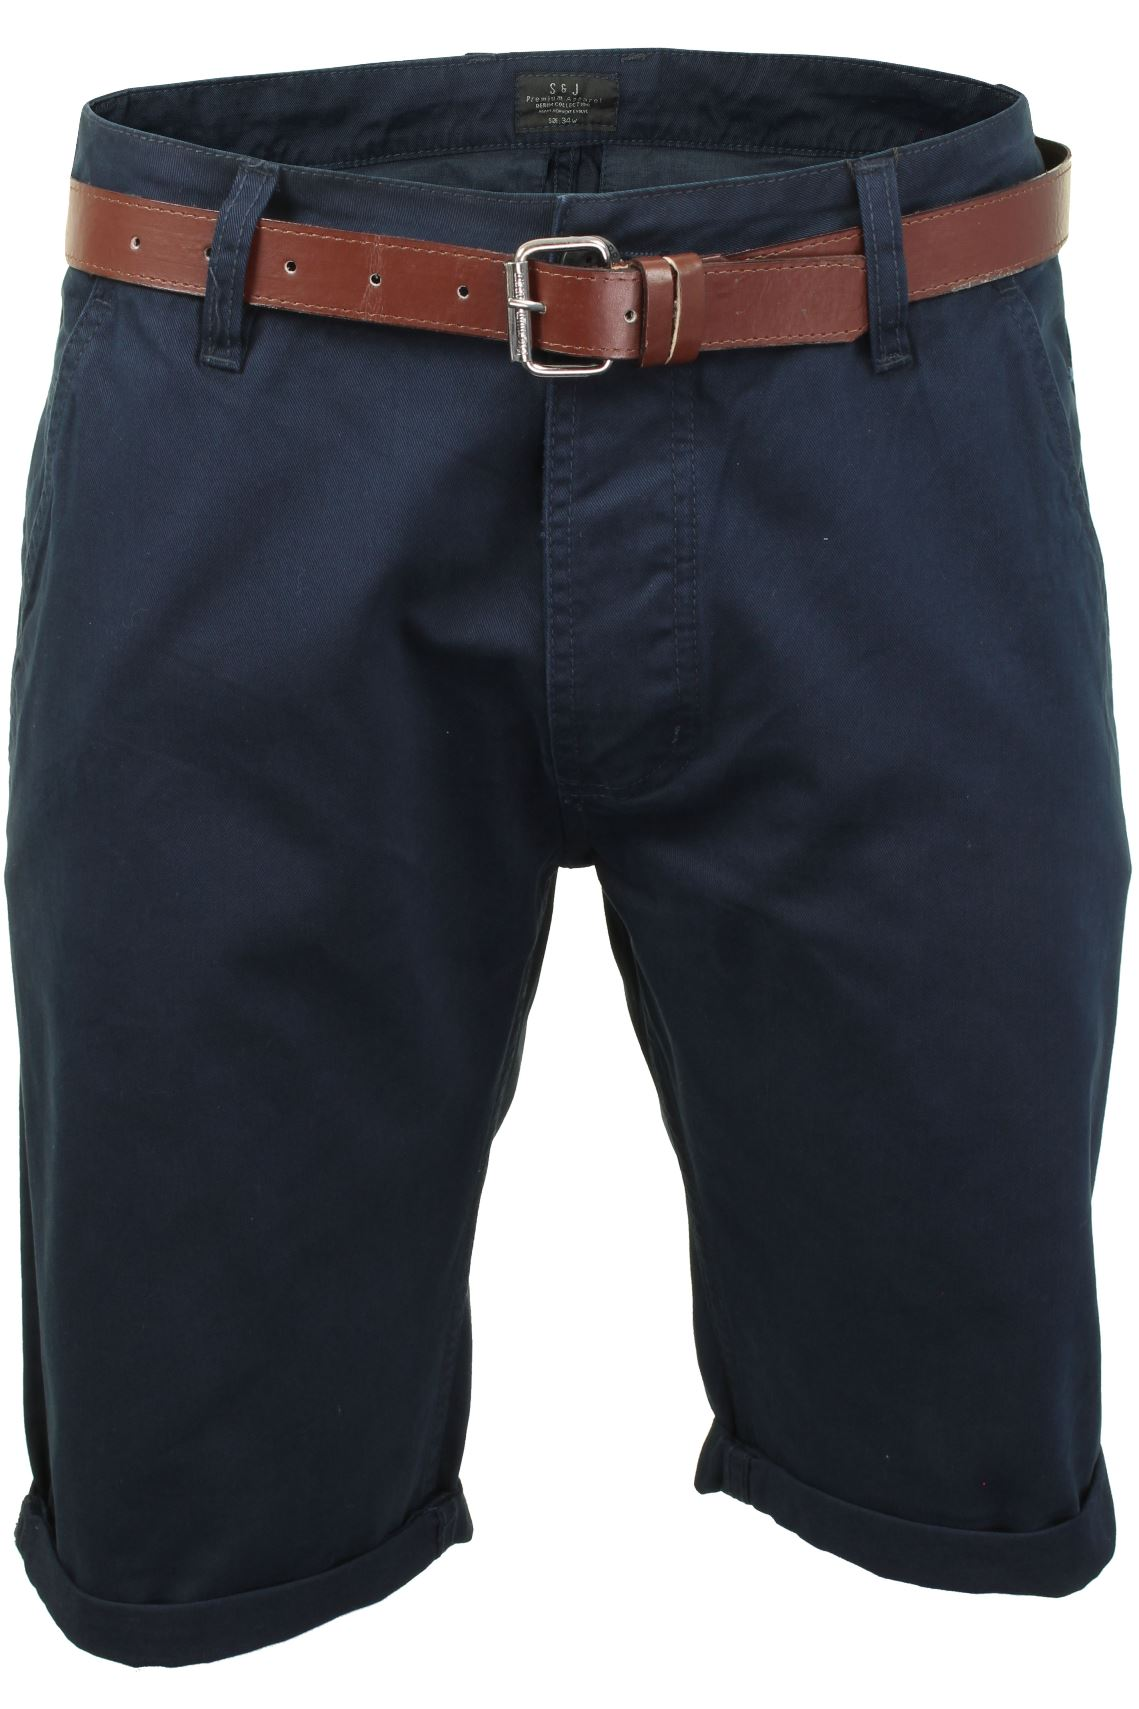 Mens Slim Fit Chino Shorts by Smith & Jones 'Inertia' Cotton Twill With Belt-Main Image